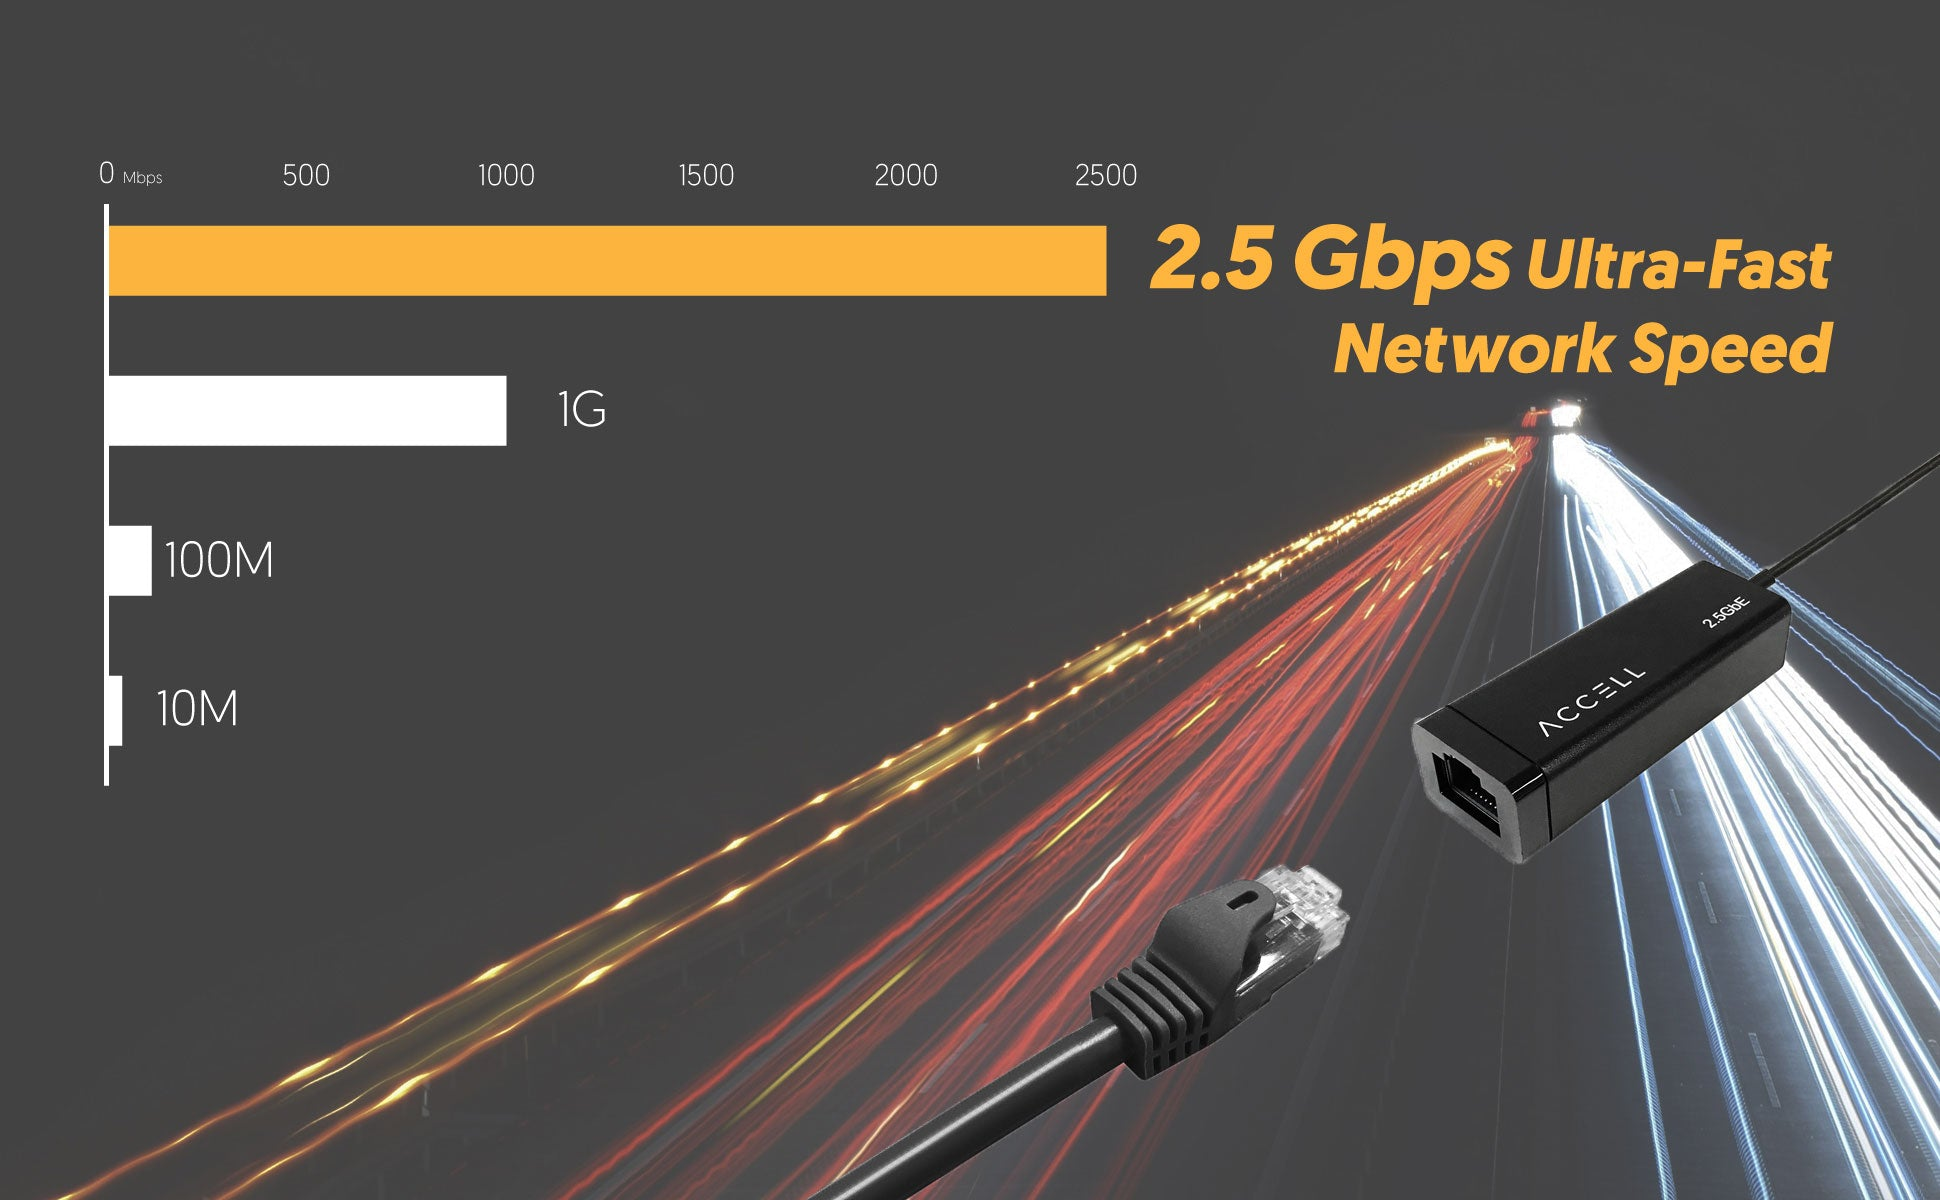 2.5Gb Ethernet Adapter allows 2.5 times faster network speed from previous gigabit ethernet connection